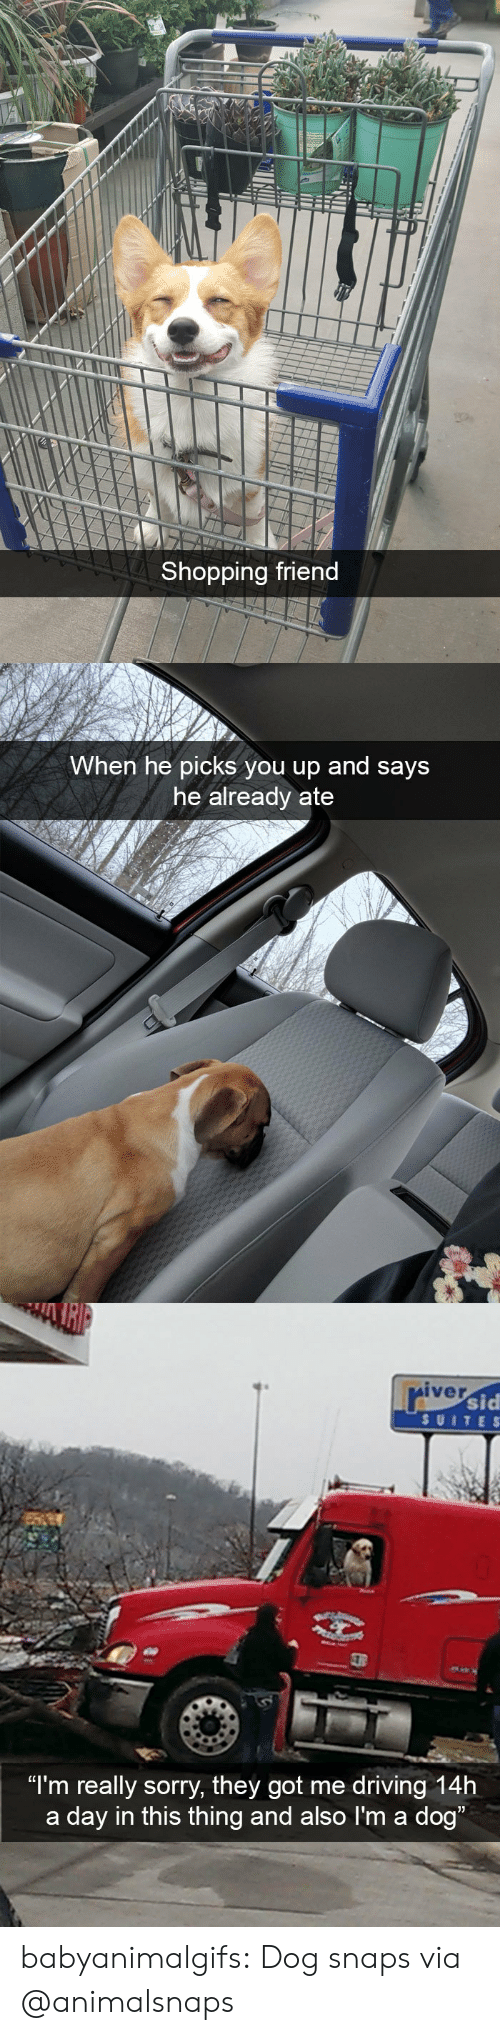 "Driving, Shopping, and Sorry: Shopping friend   When he picks you up and says  he already ate   iver  sid  SUITE S  ""I'm really sorry, they got me driving 14h  a day in this thing and also I'm a dog babyanimalgifs: Dog snaps via @animalsnaps"